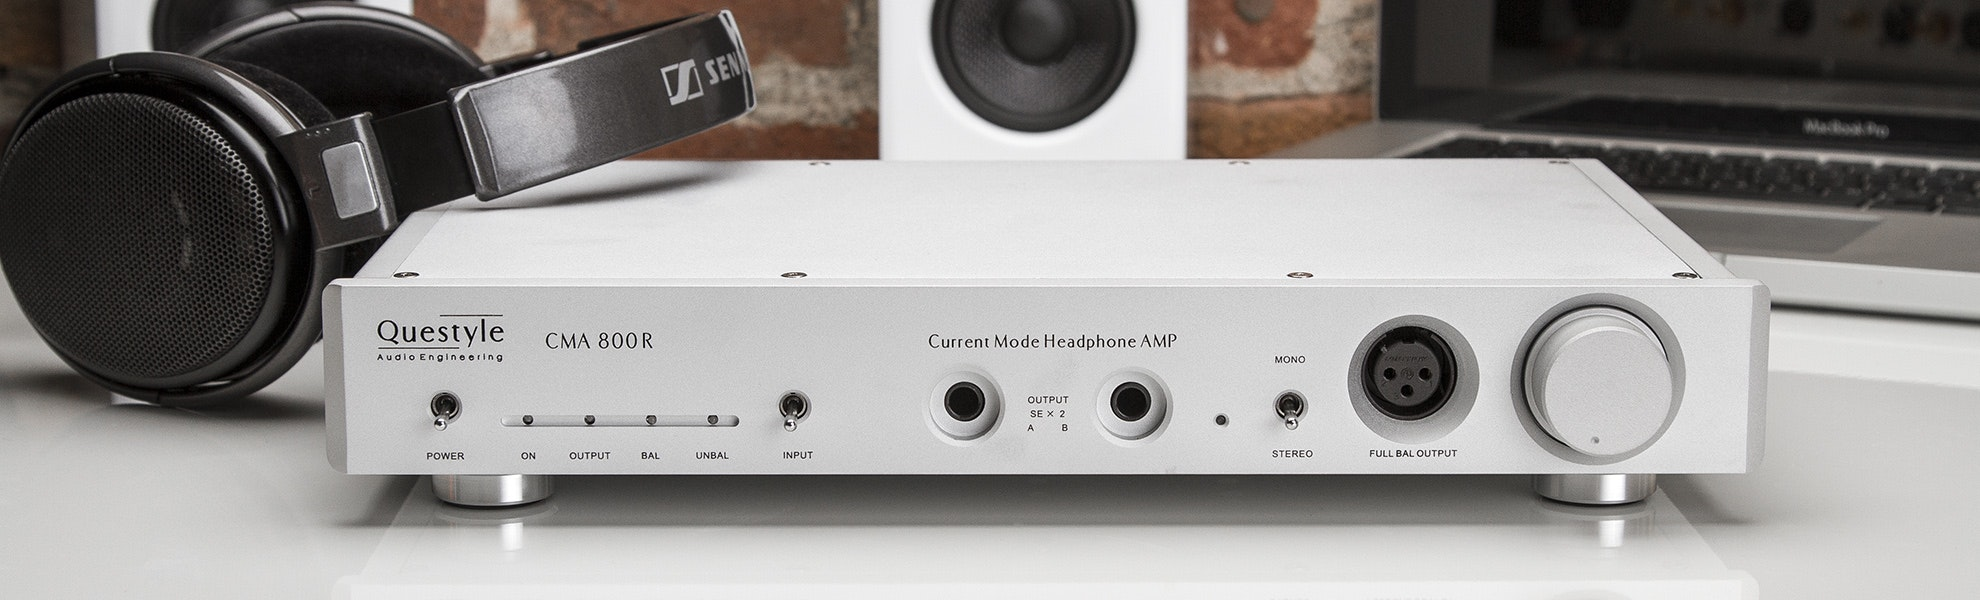 Questyle CMA 800R Headphone Amplifier